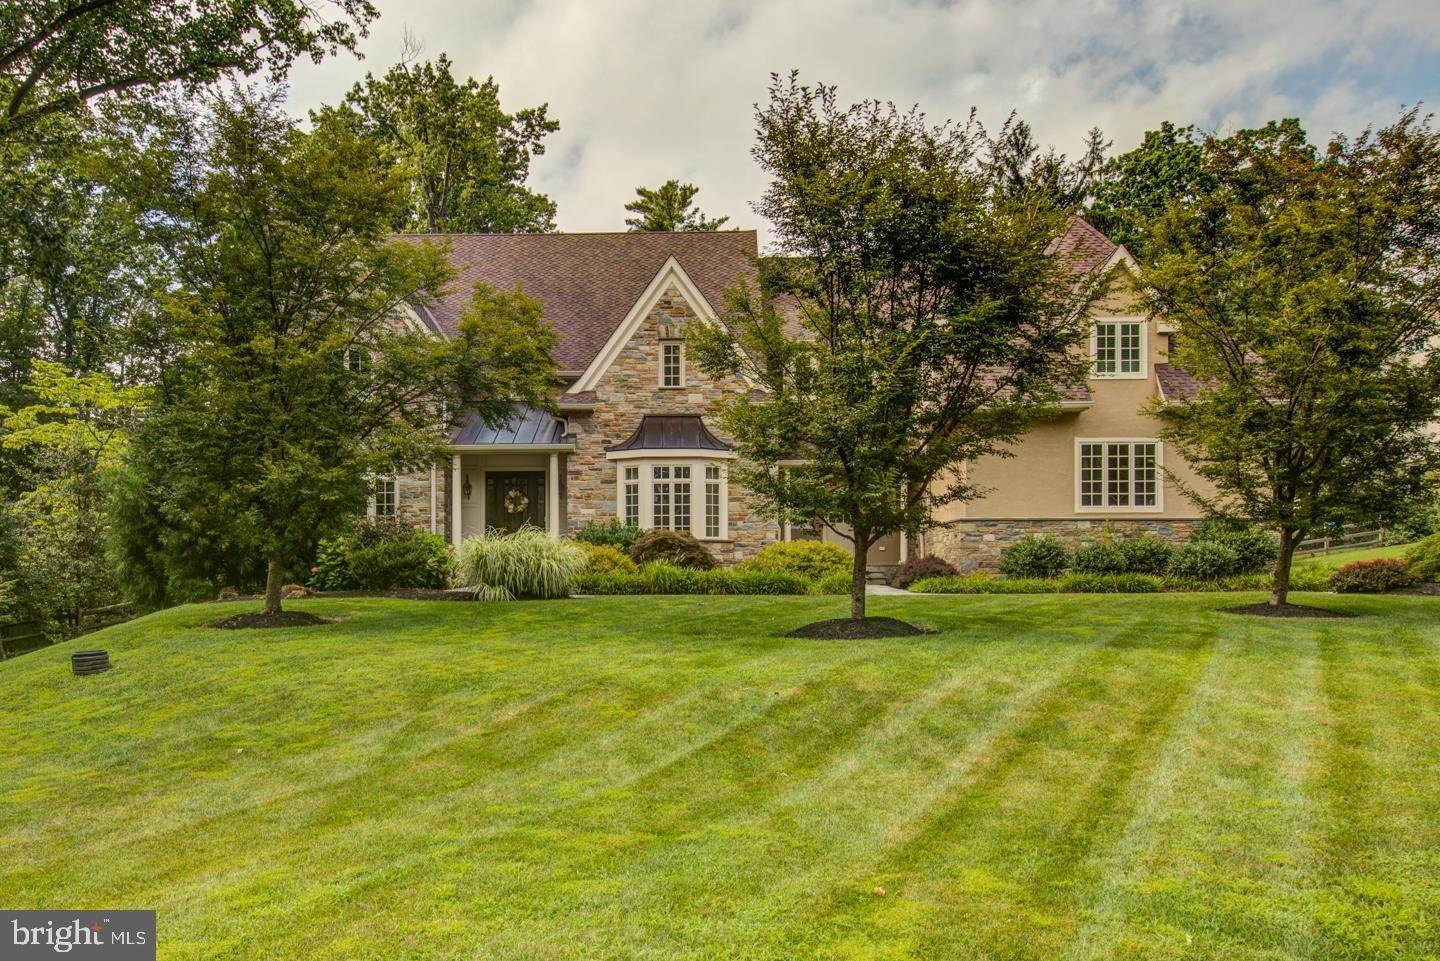 Detached House for Sale at 726 HARRITON Road Bryn Mawr, Pennsylvania 19010 United States